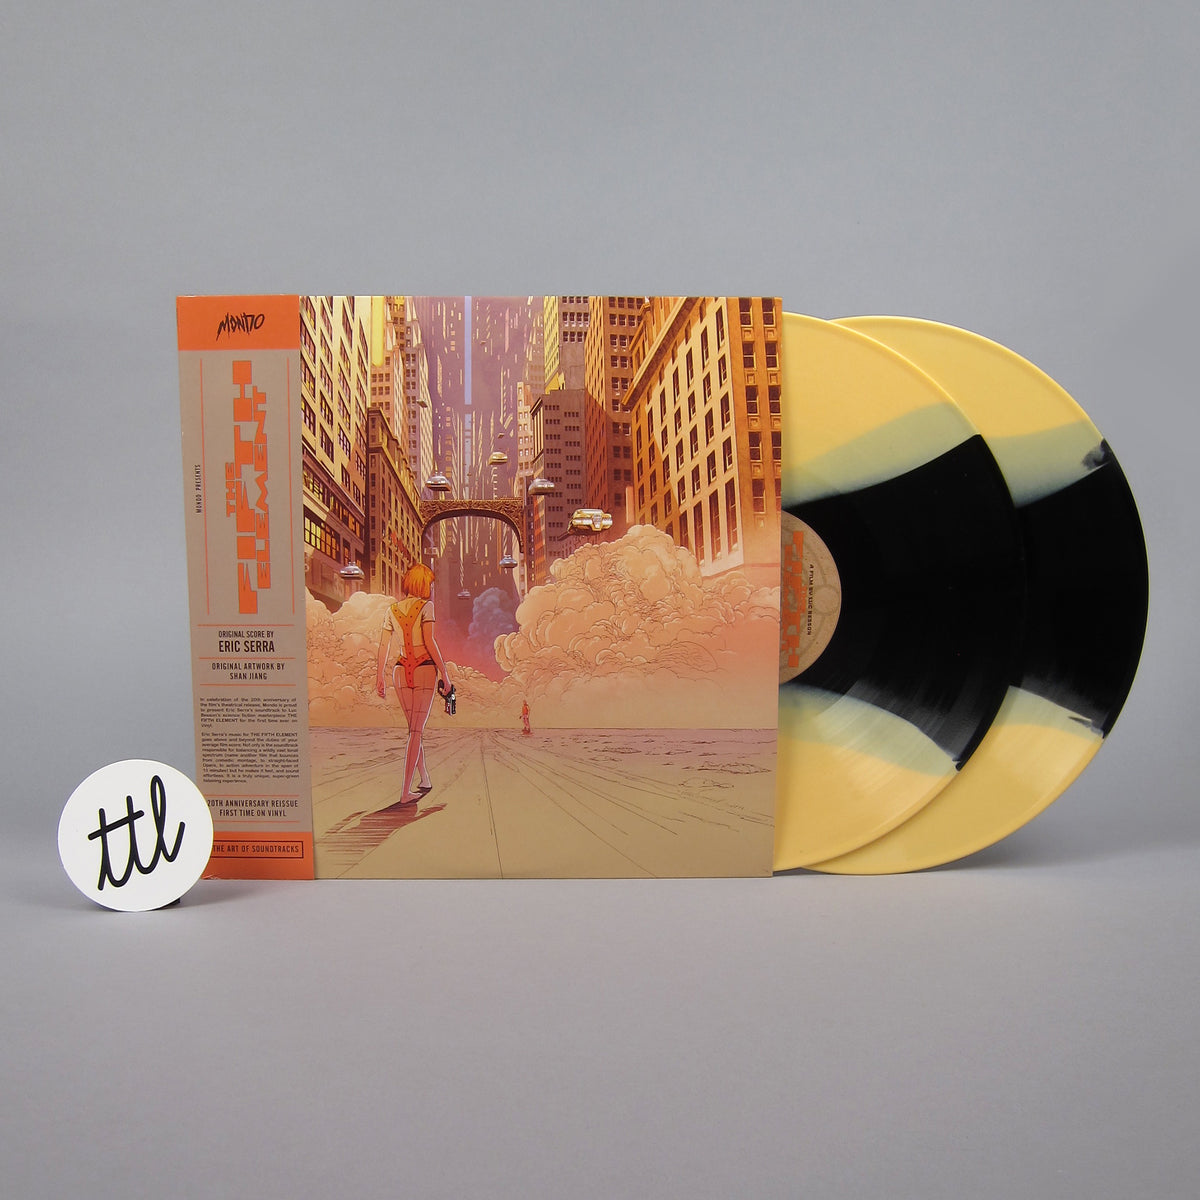 Eric Serra: Fifth Element (Colored Vinyl) Vinyl 2LP - Turntable Lab Exclusive